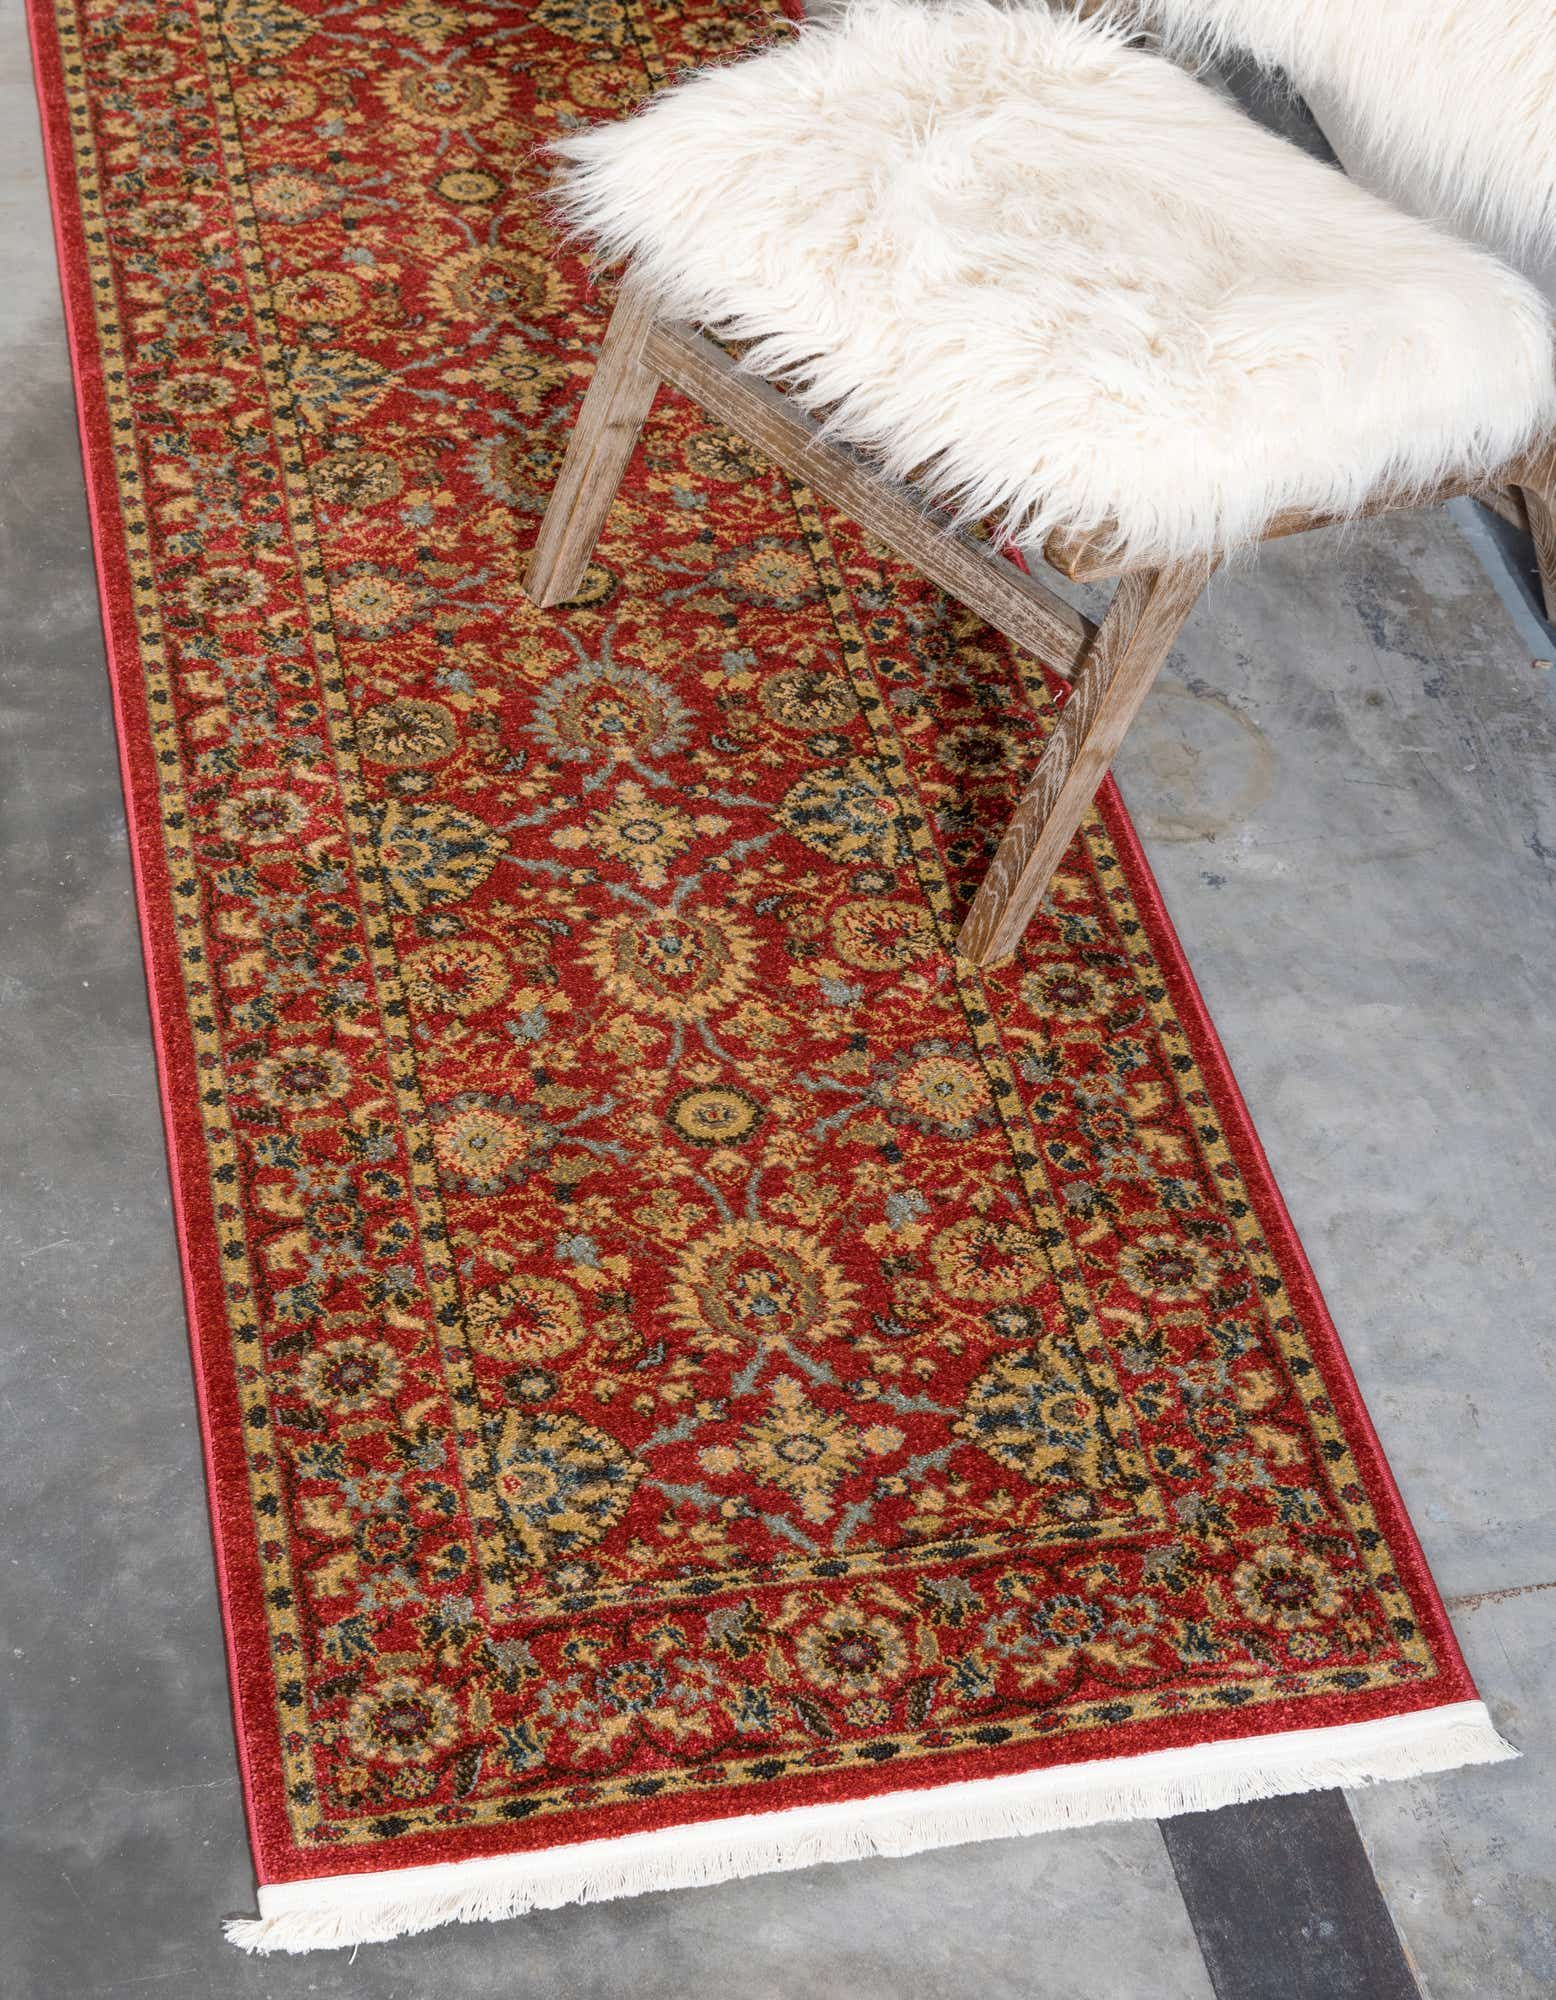 Red 2 7 X 10 Edinburgh Runner Rug Unique Loom Red Runner Rug Red Carpet Runner Area Rugs